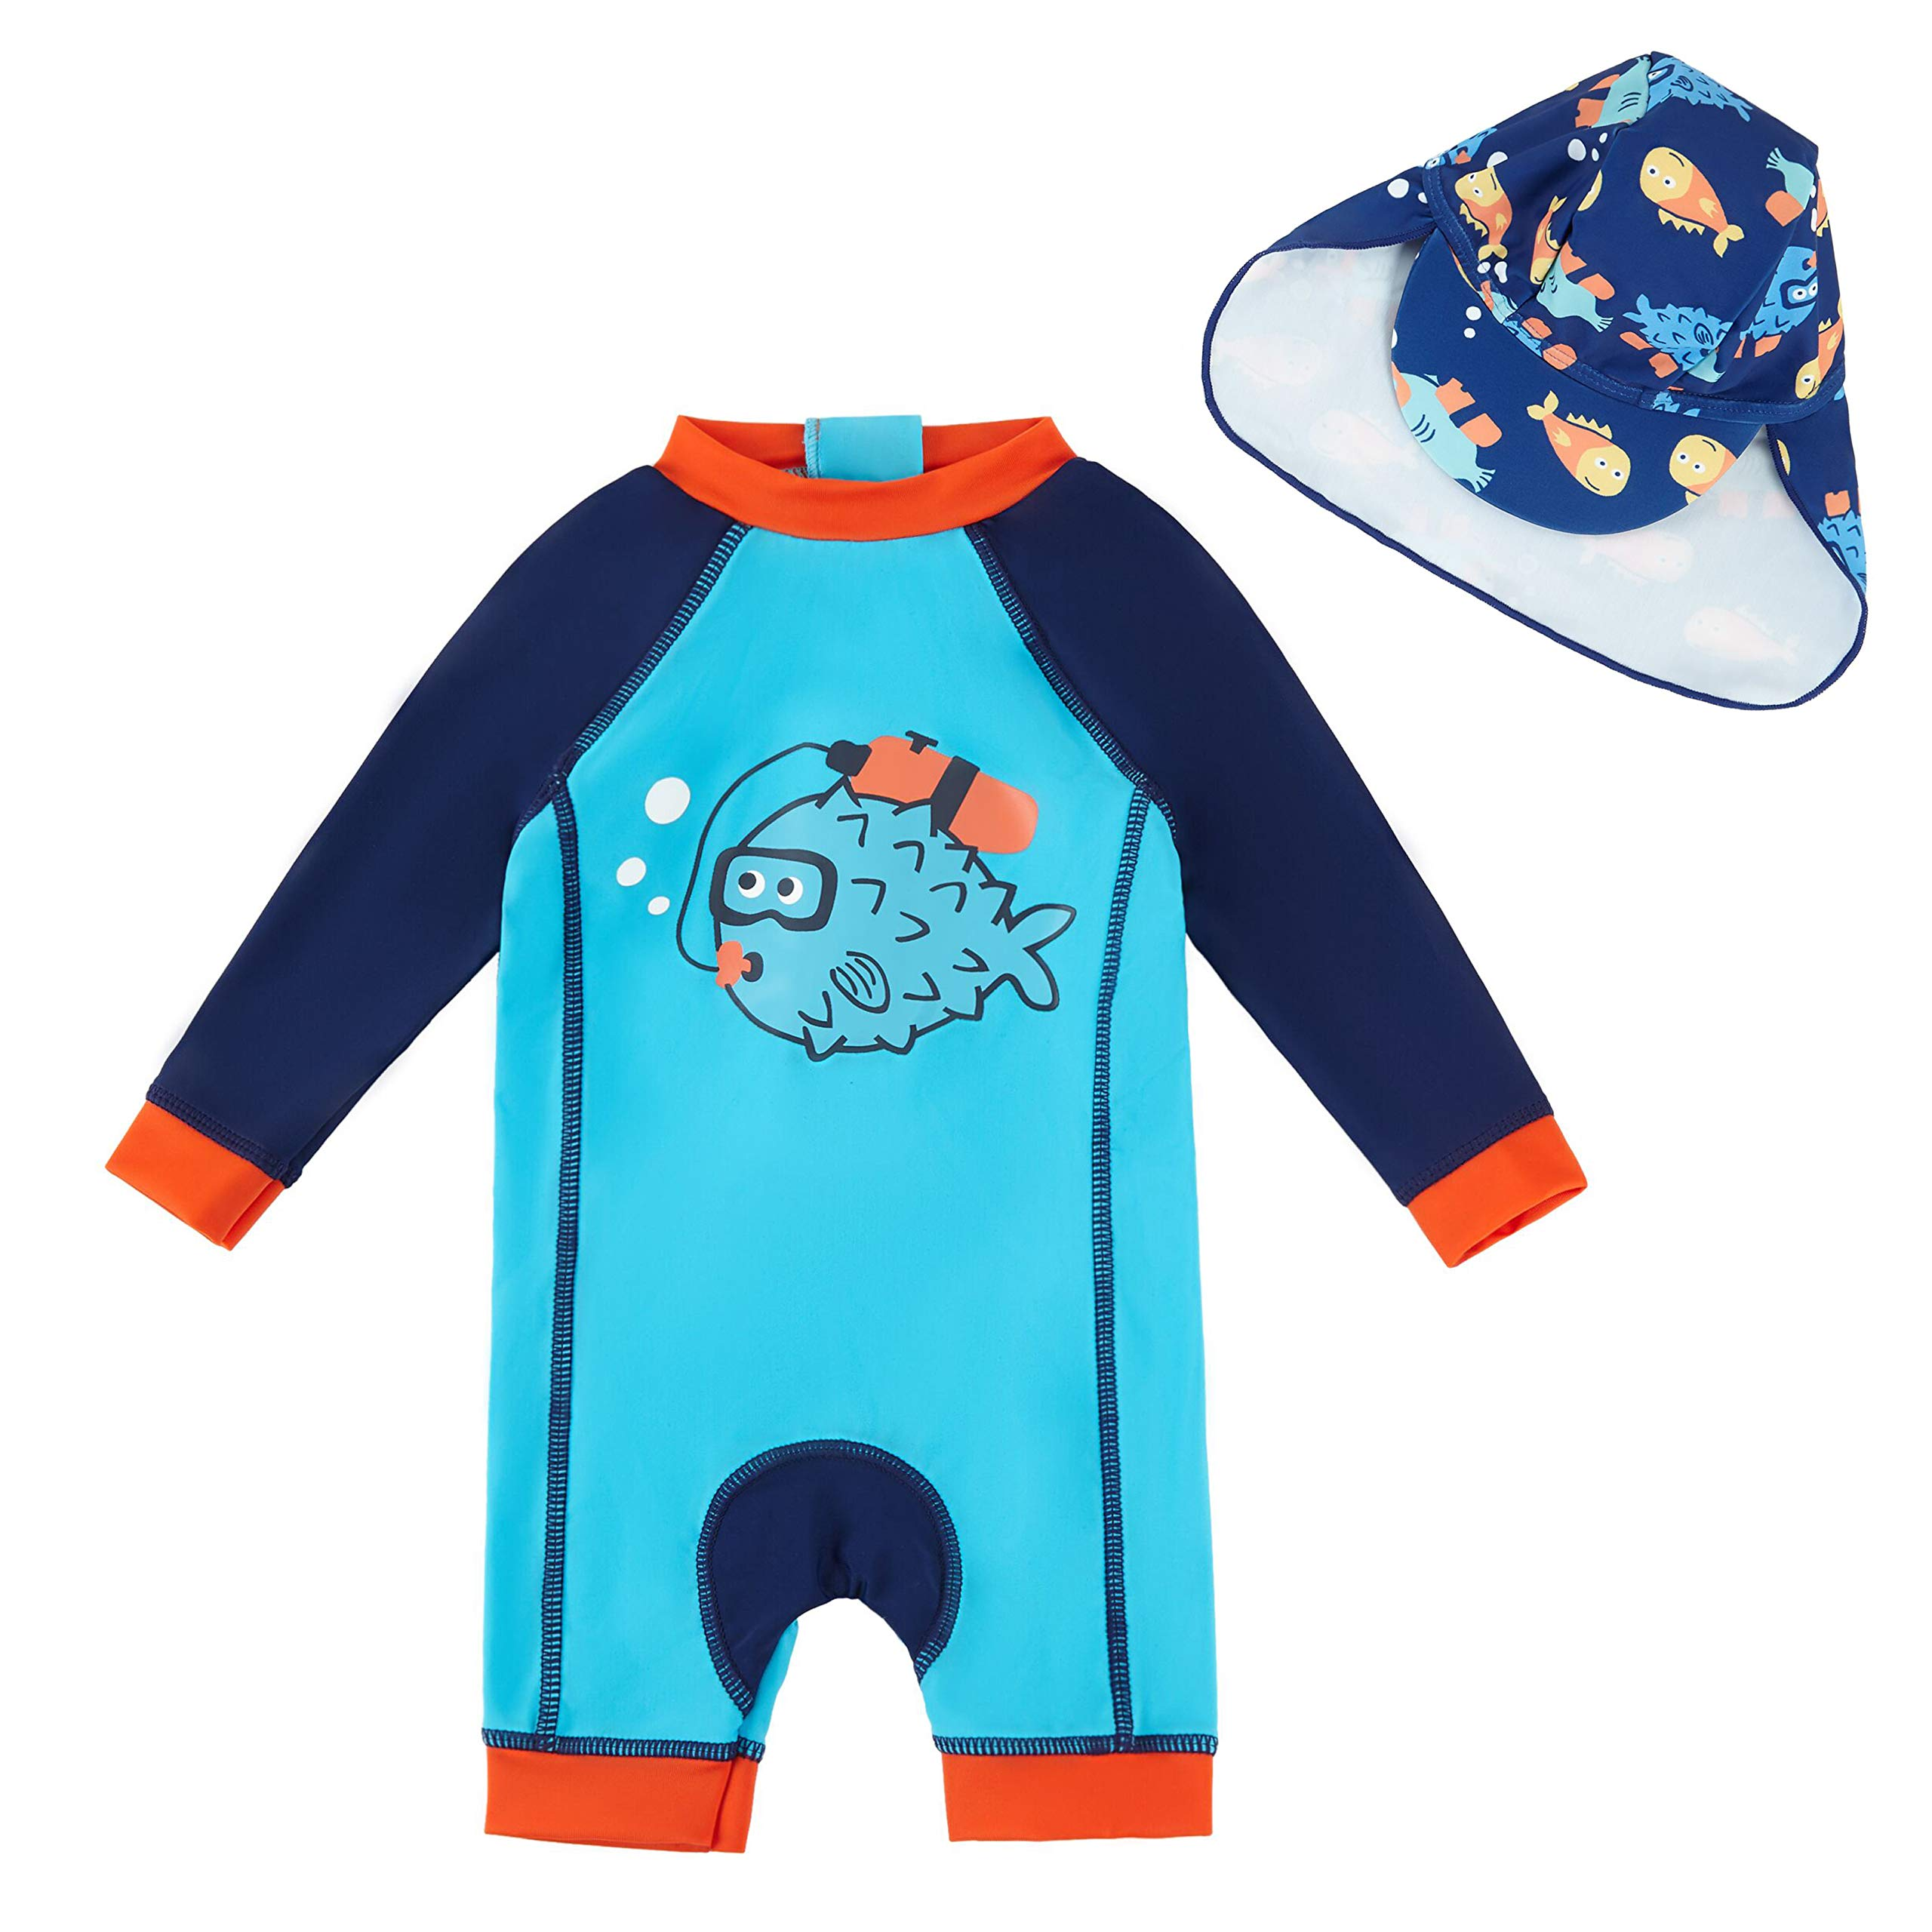 upandfast Baby Boy L/S Rashguard Baby Beach One-Piece Swimsuit(Blue,12-18 Months by upandfast